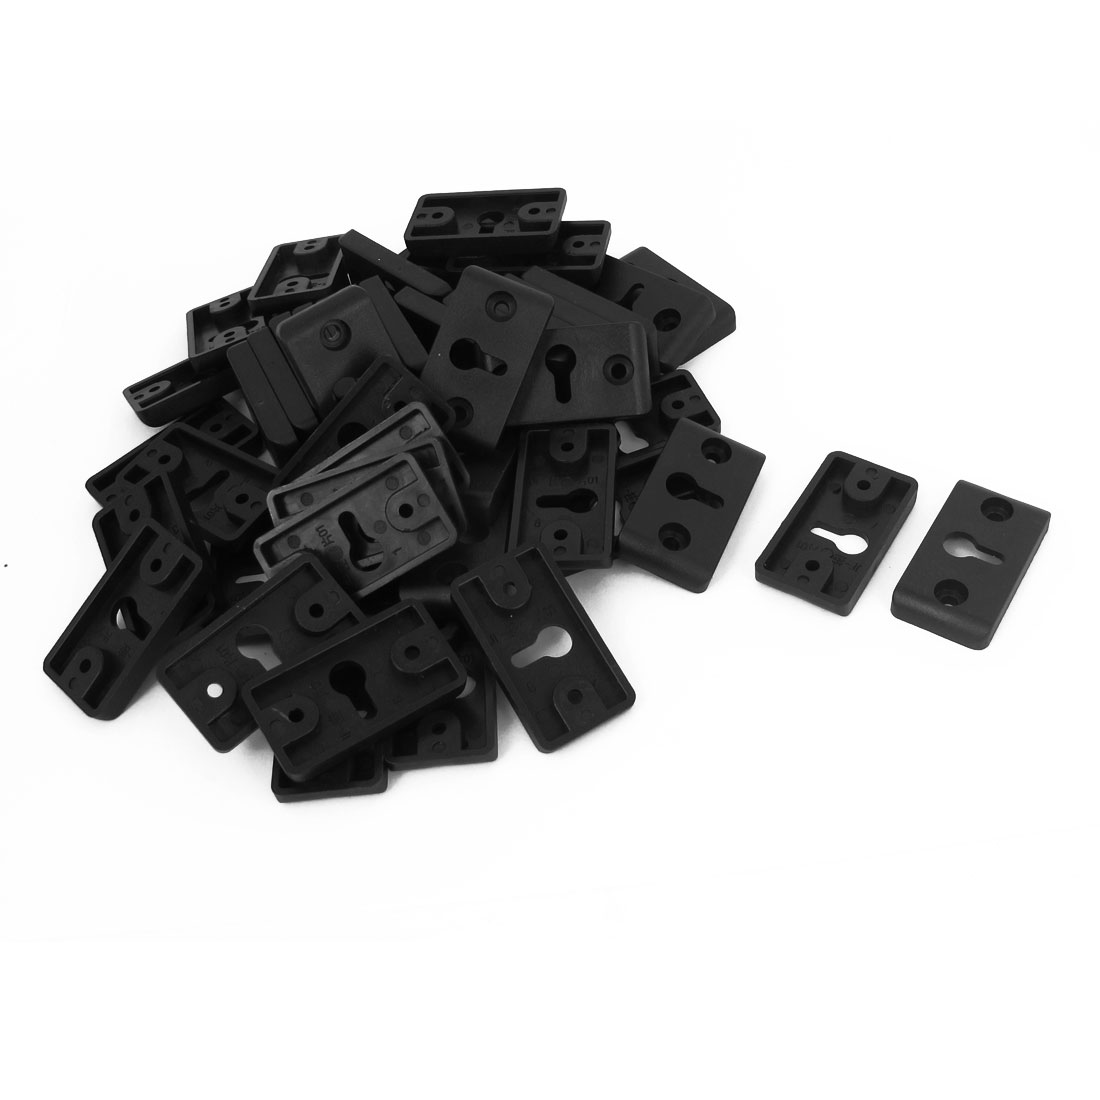 Rectangle Plastic Amplifier Speaker DIY Wall Mount Hook Hanger Plate Black 50pcs